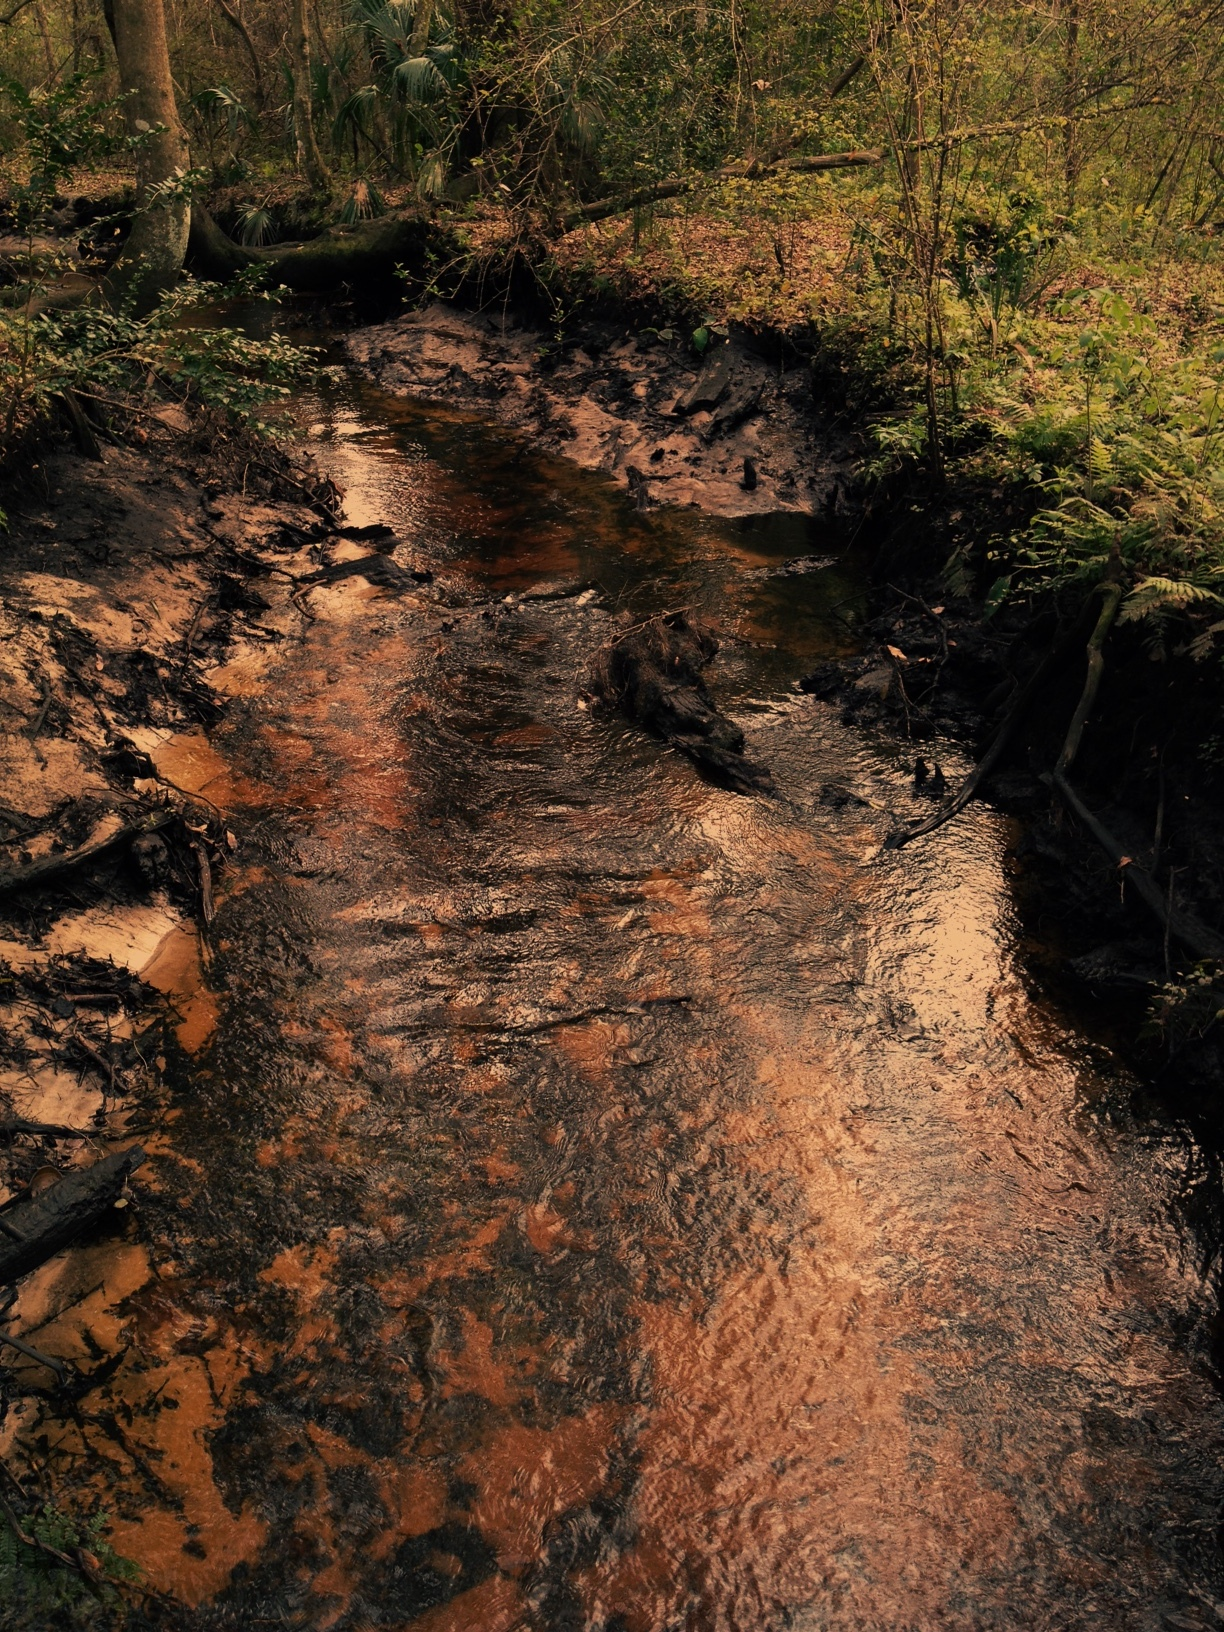 Copper leaf stream